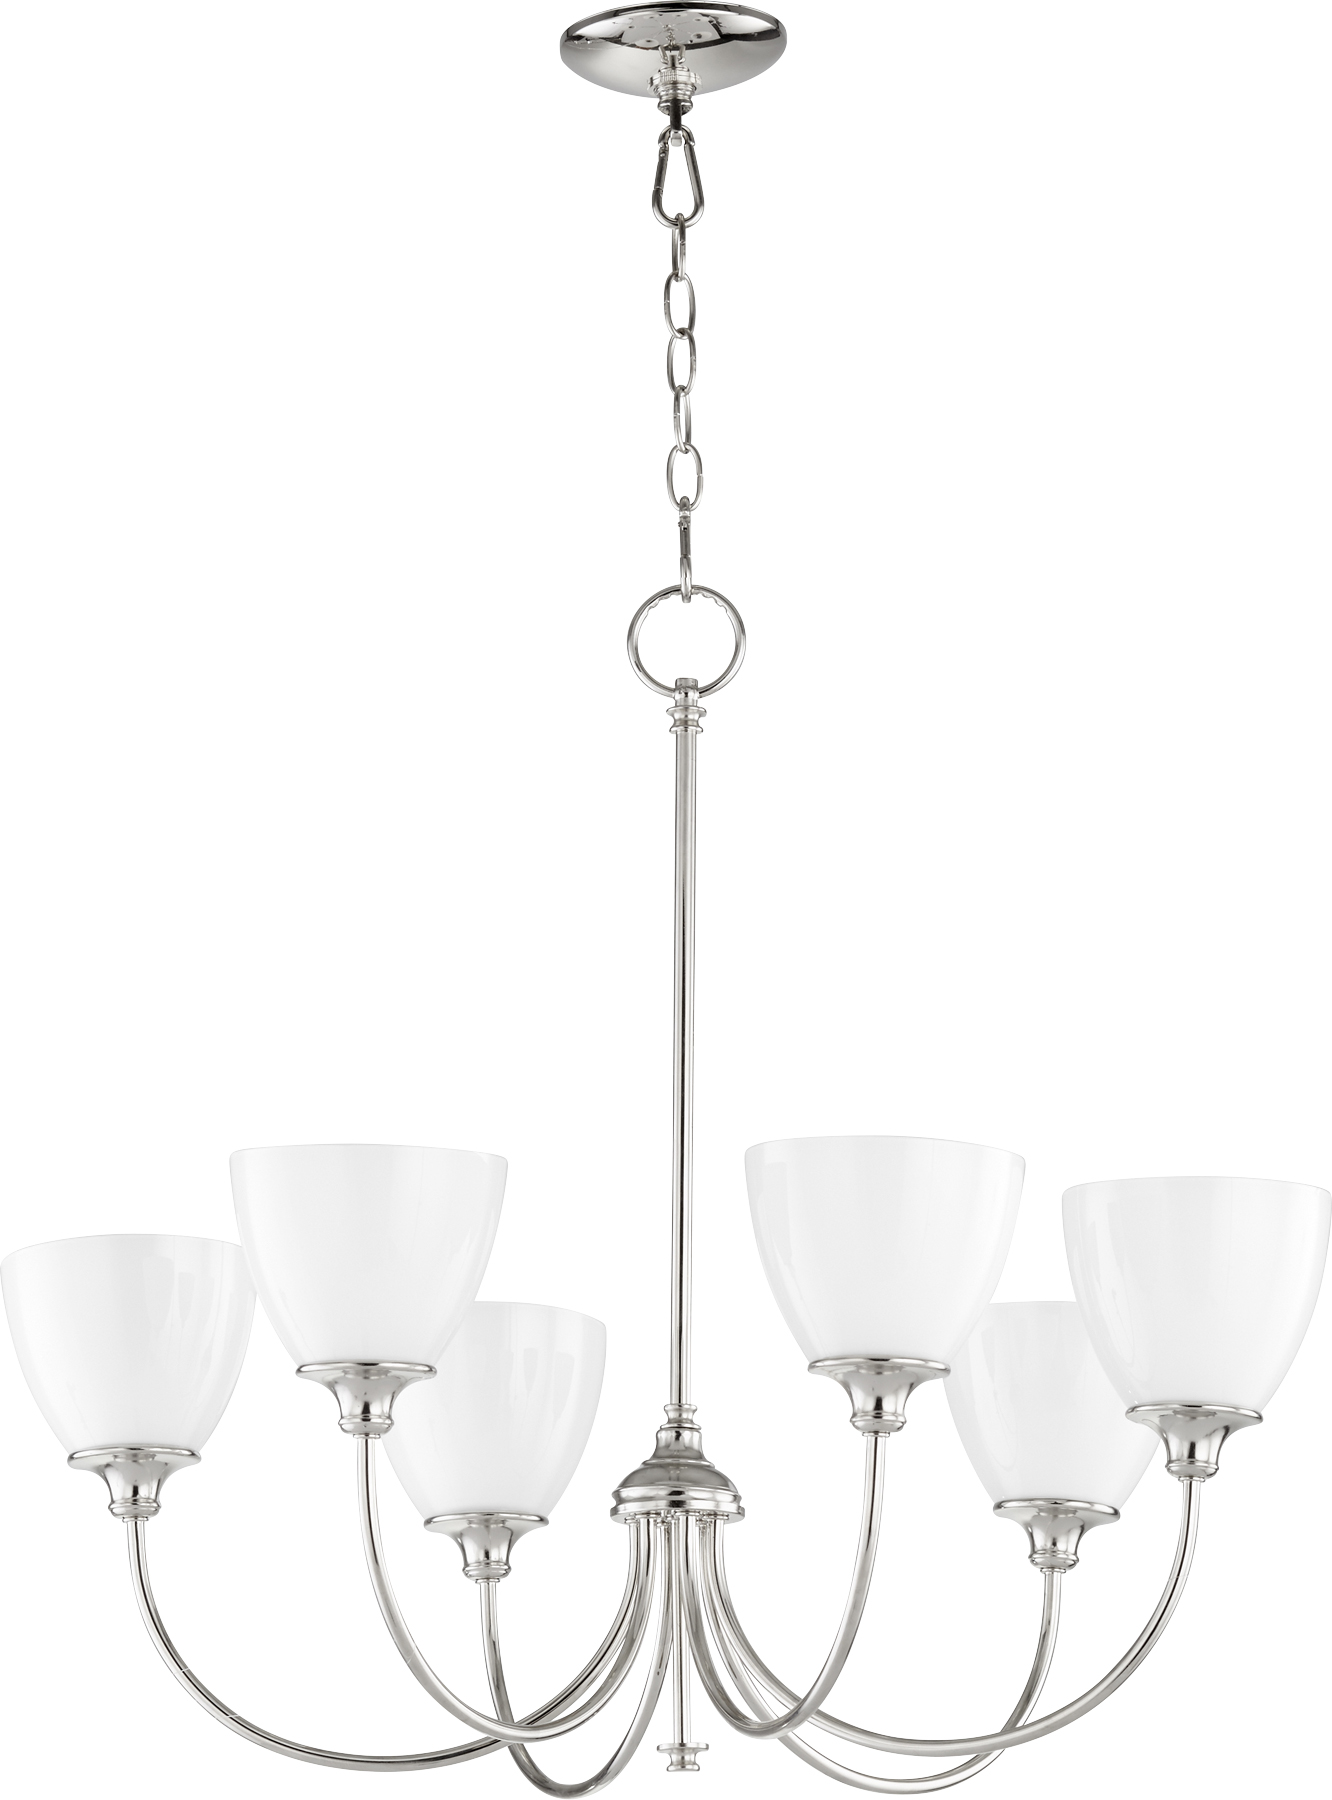 Polished Nickel Celeste 6 Light 28 Wide Chandelier W